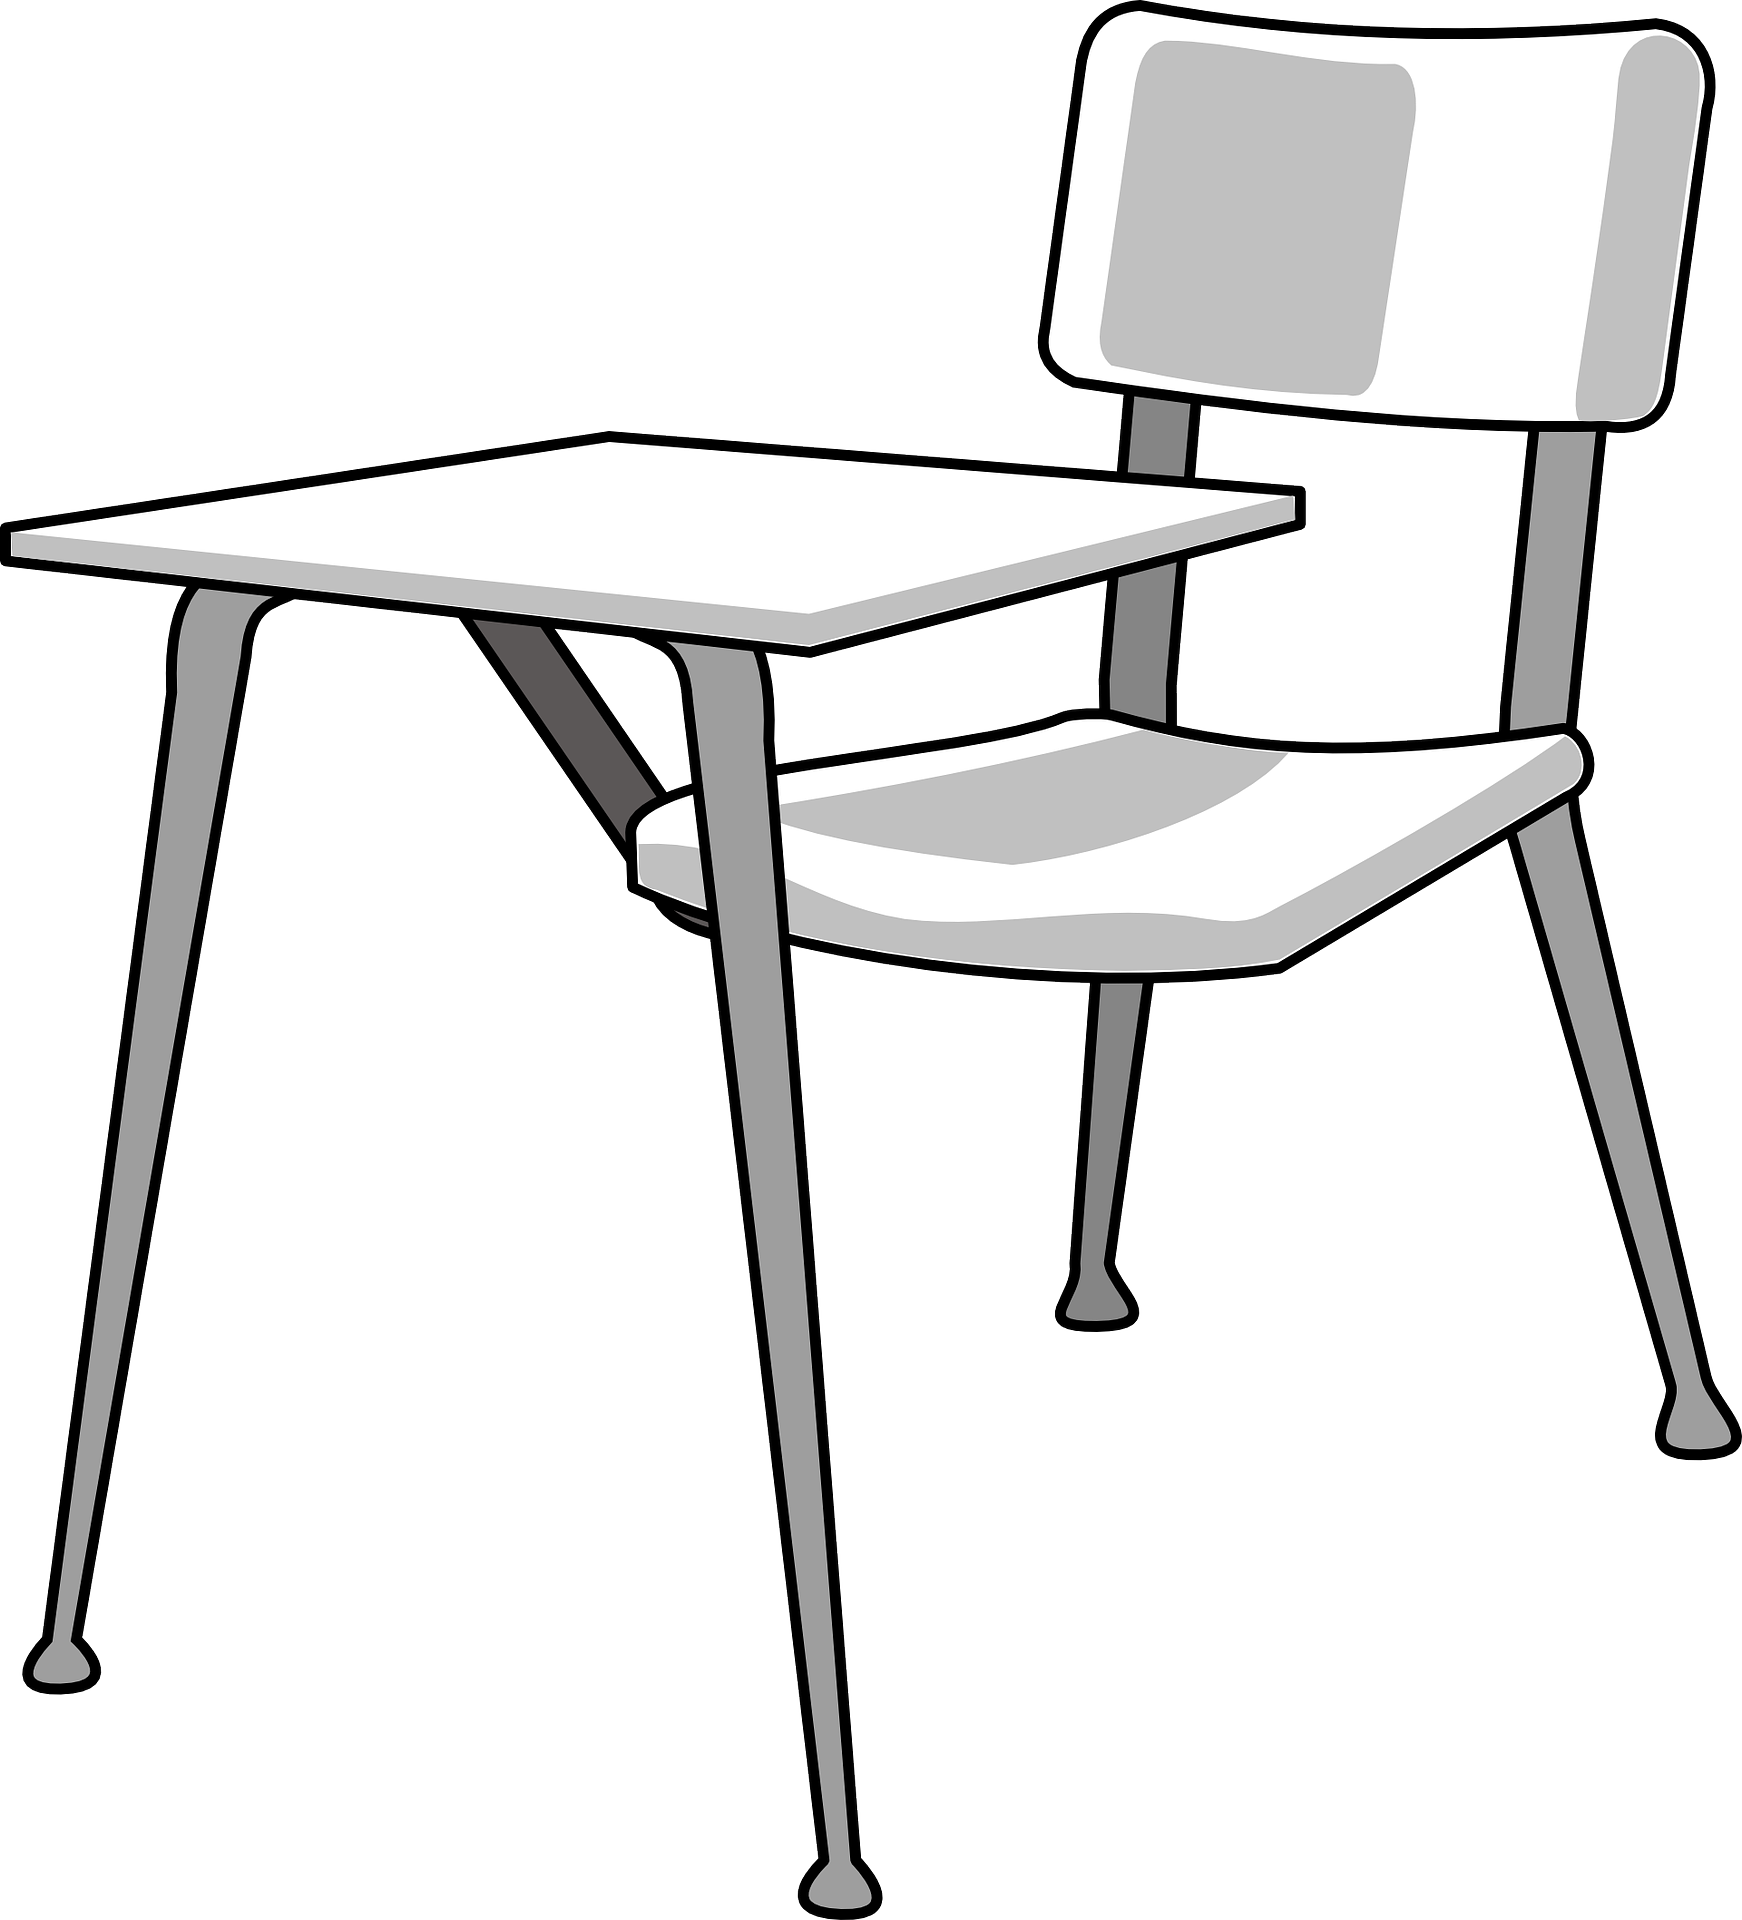 Desk clipart class.  collection of classroom